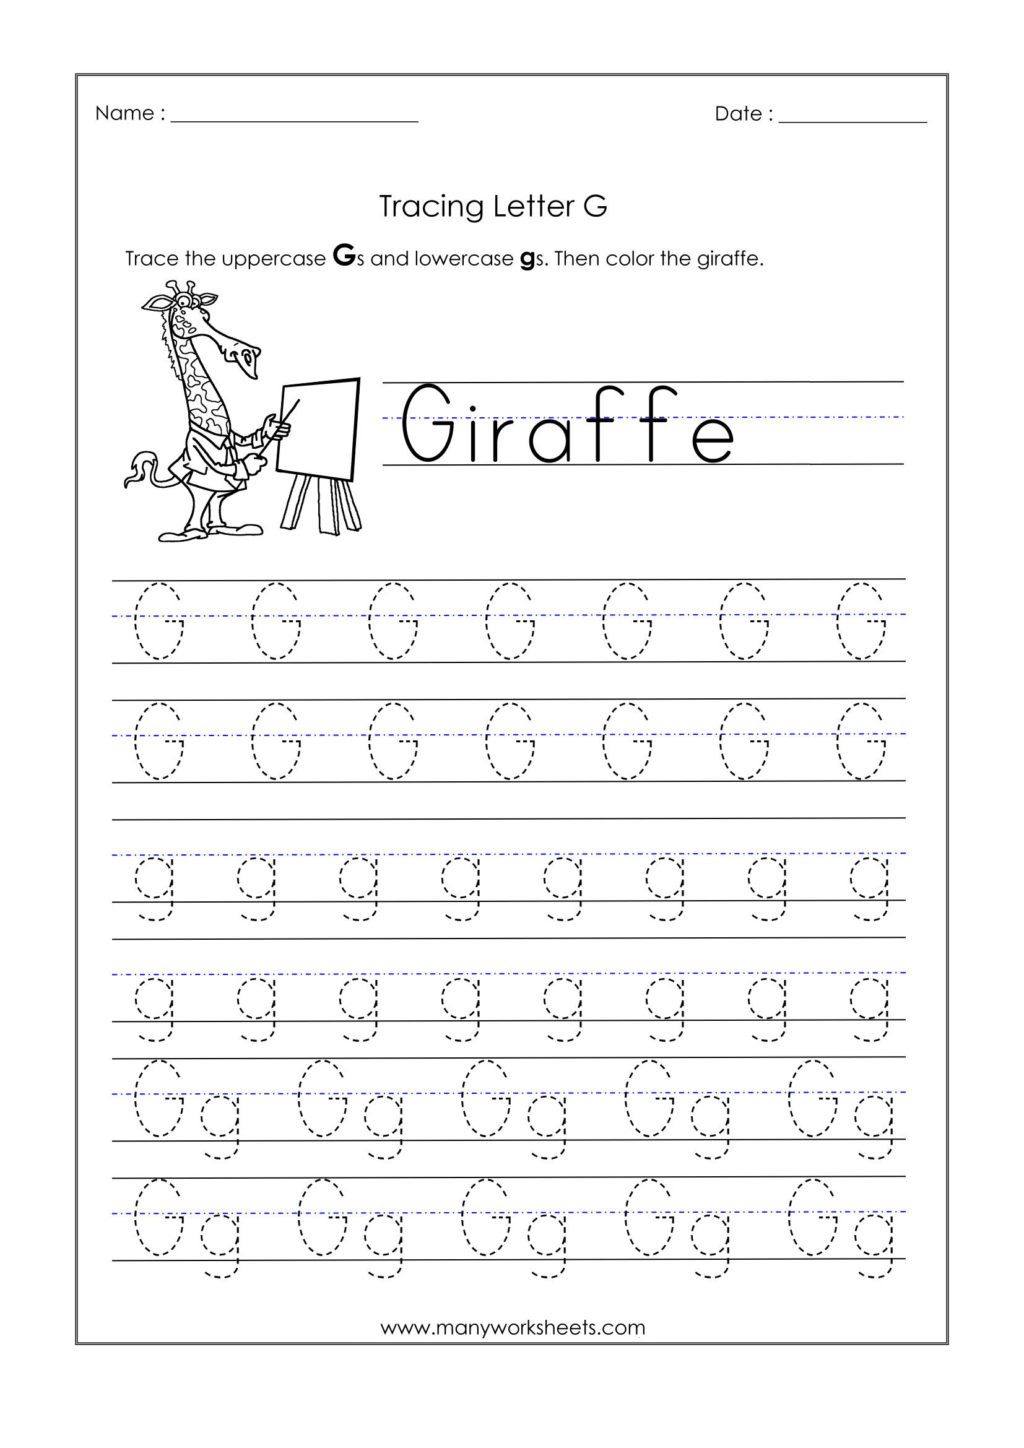 Letter G Tracing Worksheets Preschool Worksheet Kindergarten Tracing Worksheets Letter G